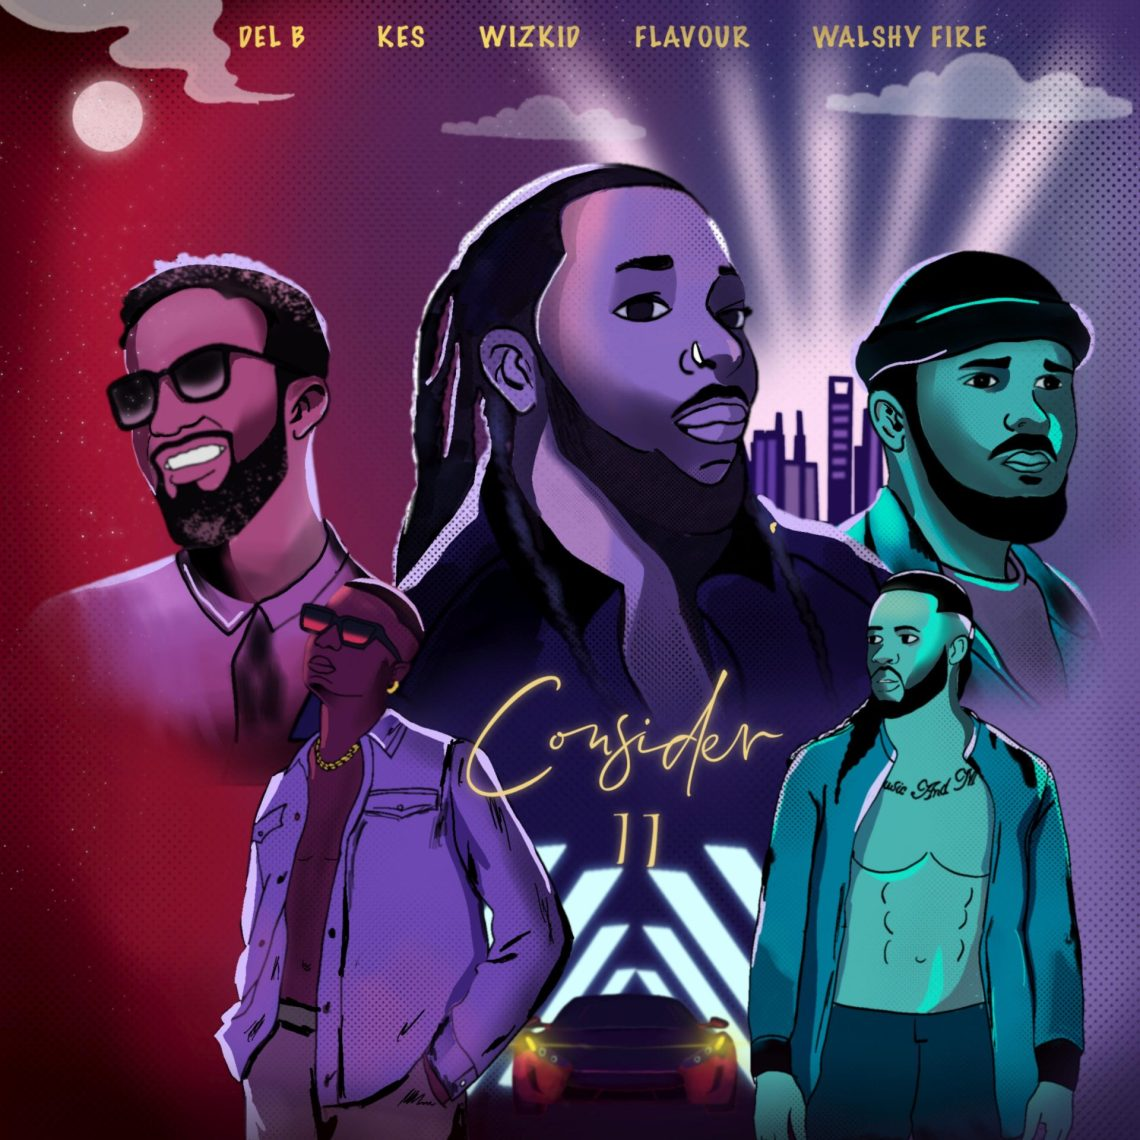 Consider II feat. Del B, Kes, Wizkid, Flavour and Walshy Fire